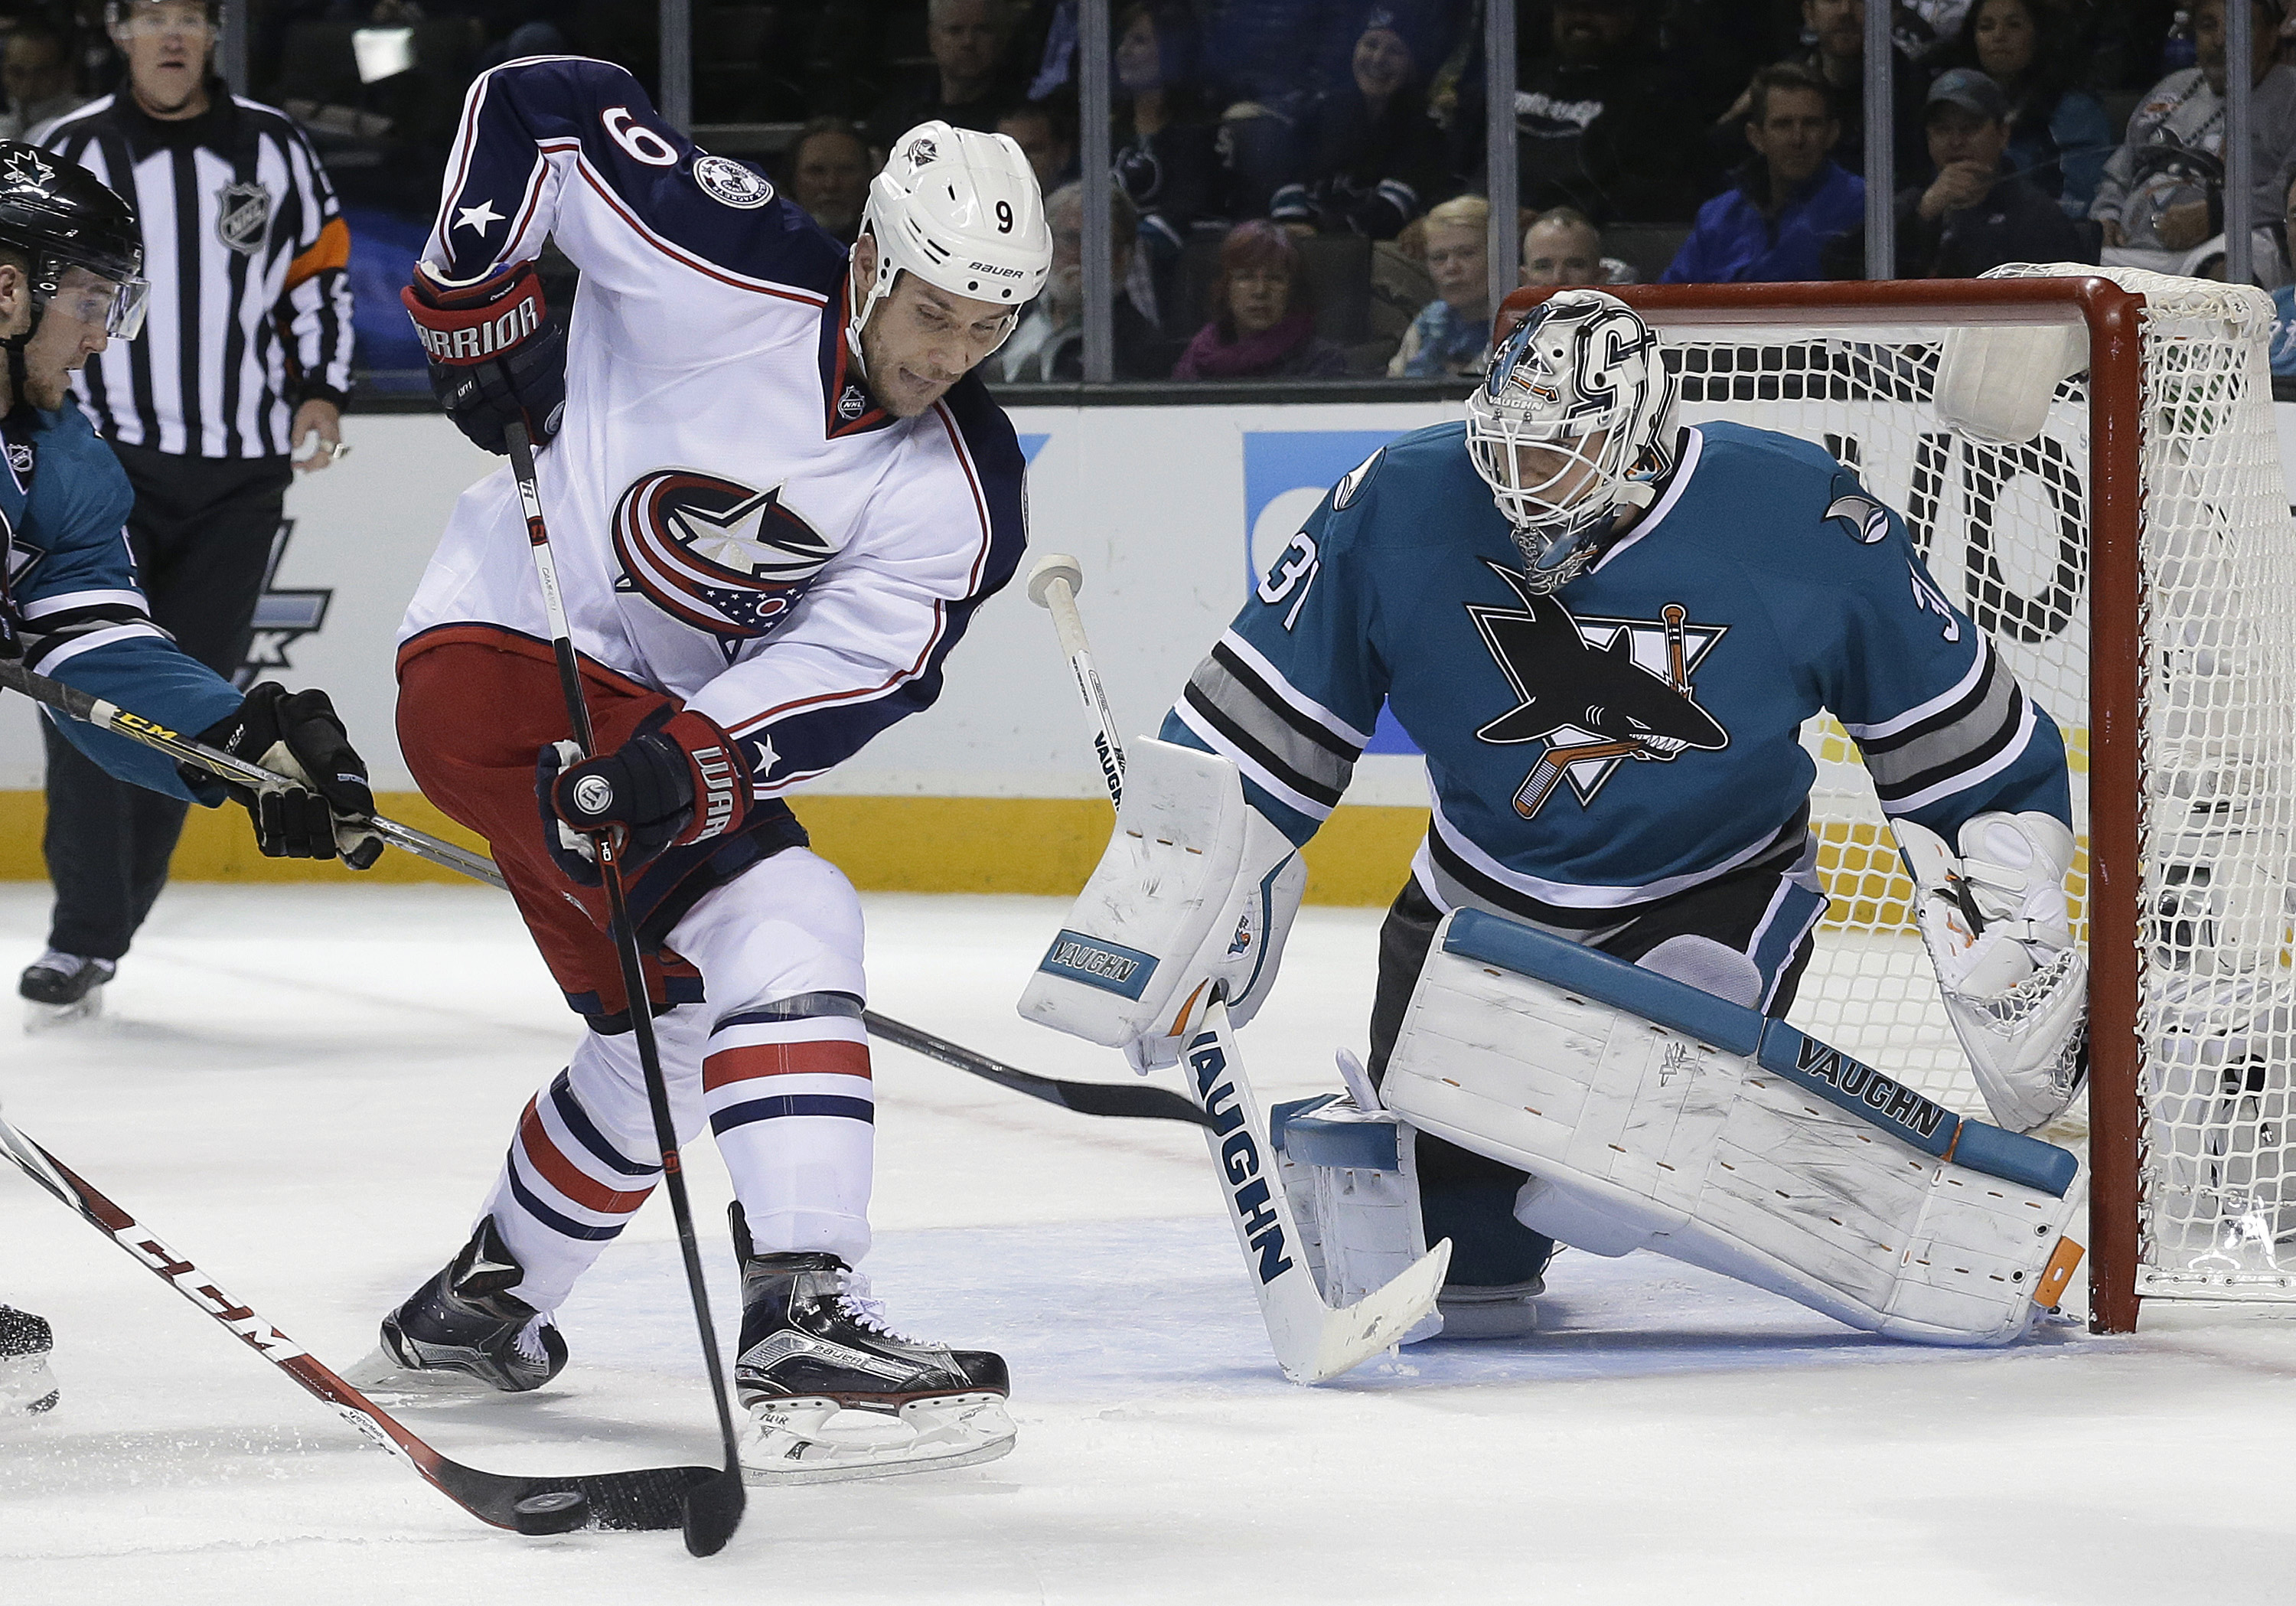 Columbus Blue Jackets center Gregory Campbell (9) reaches for the puck next to San Jose Sharks goalie Martin Jones (31) during the second period of an NHL hockey game in San Jose, Calif., Tuesday, Nov. 3, 2015. (AP Photo/Jeff Chiu)